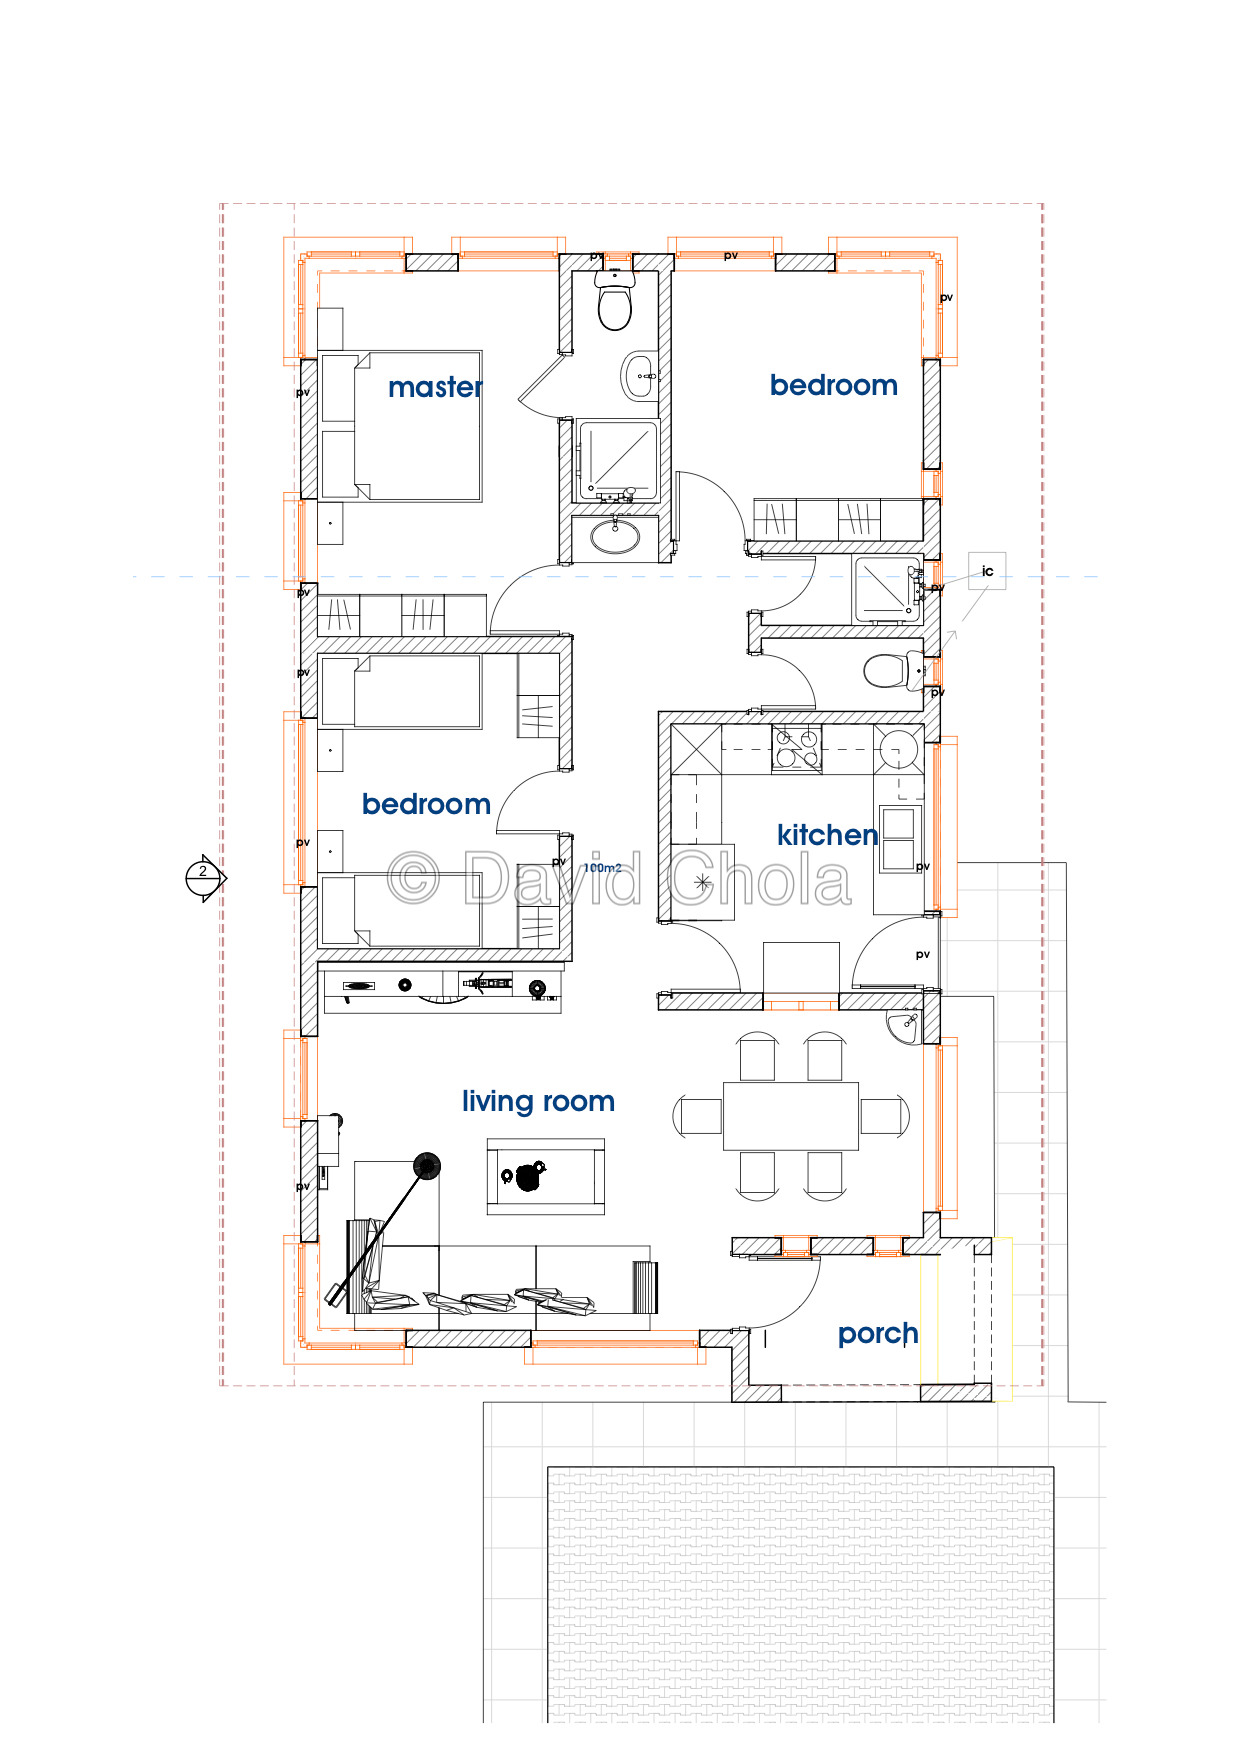 Low Budget House Plans Inspirational David Chola – Architect – House Plans In Kenya – the Bud